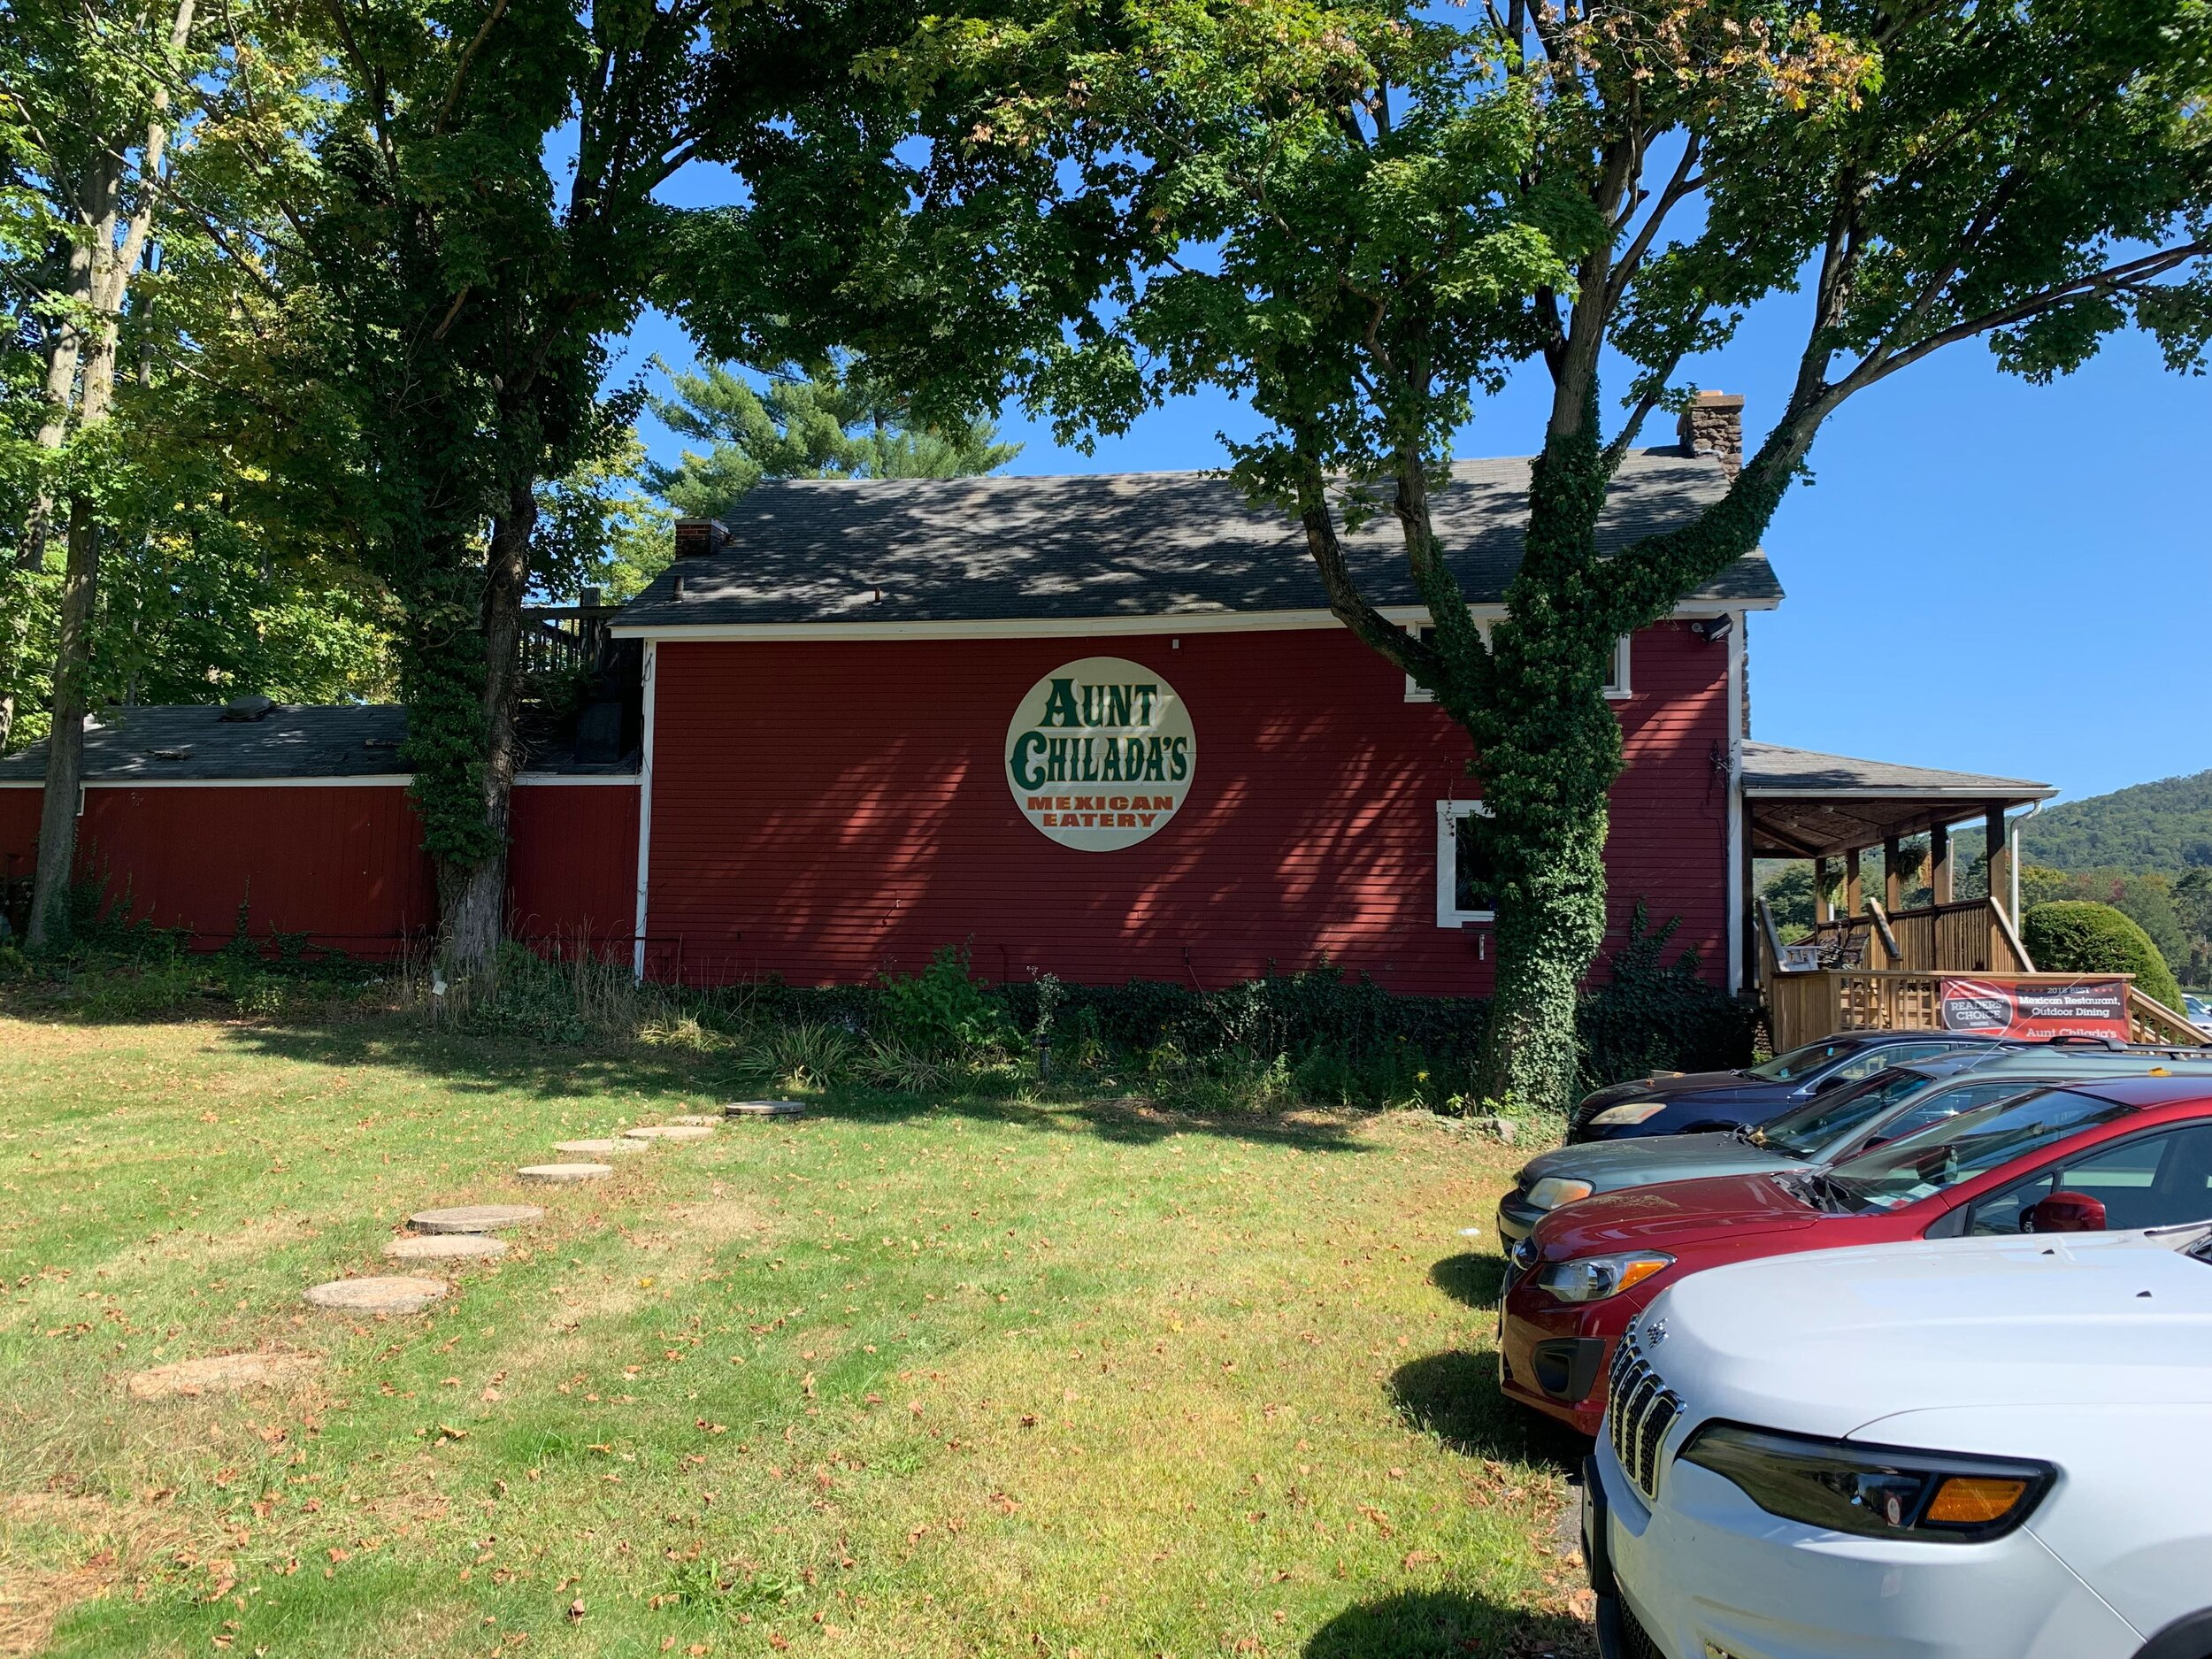 Aunt Chilada's doubles a spot for students to go on weekends.